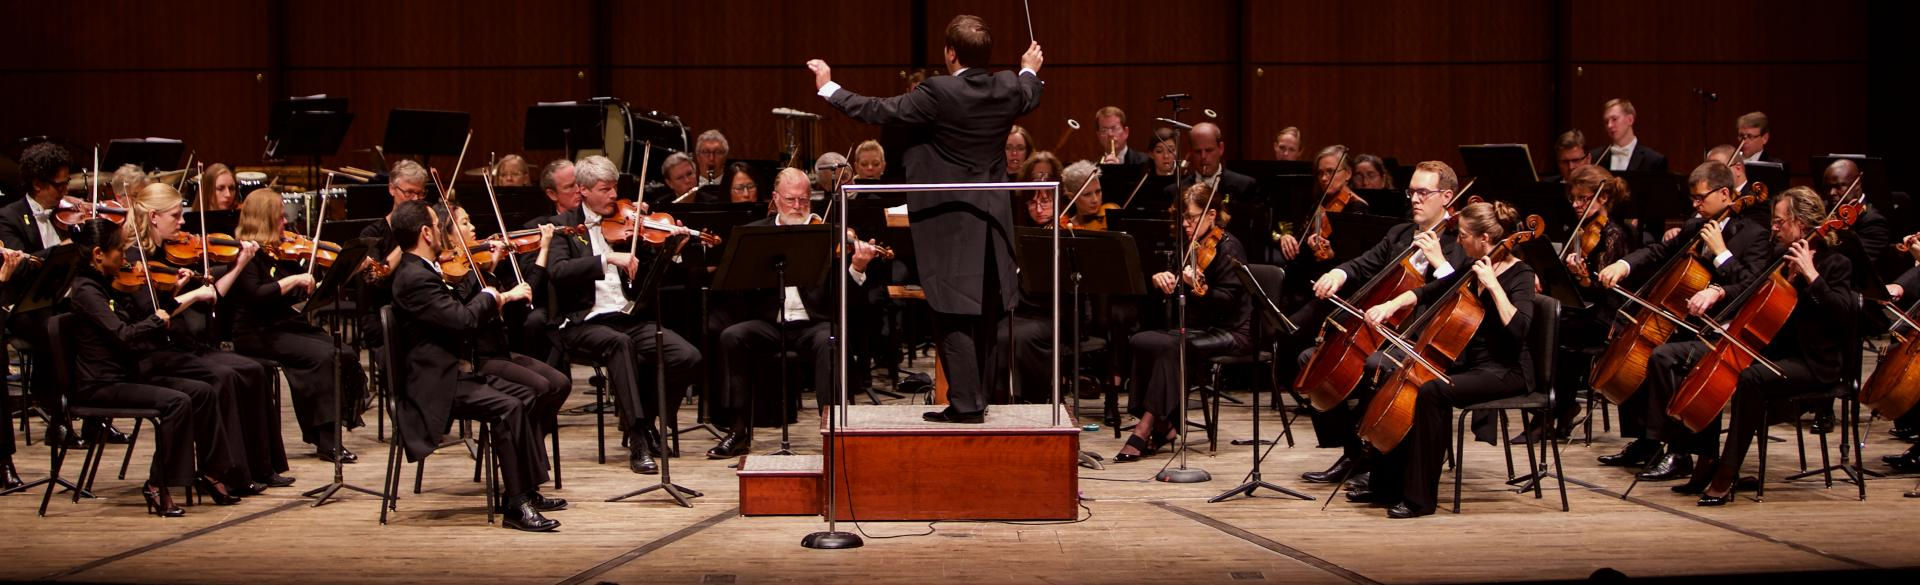 Grand Rapids Symphony performing lead by Marcelo Lehninger